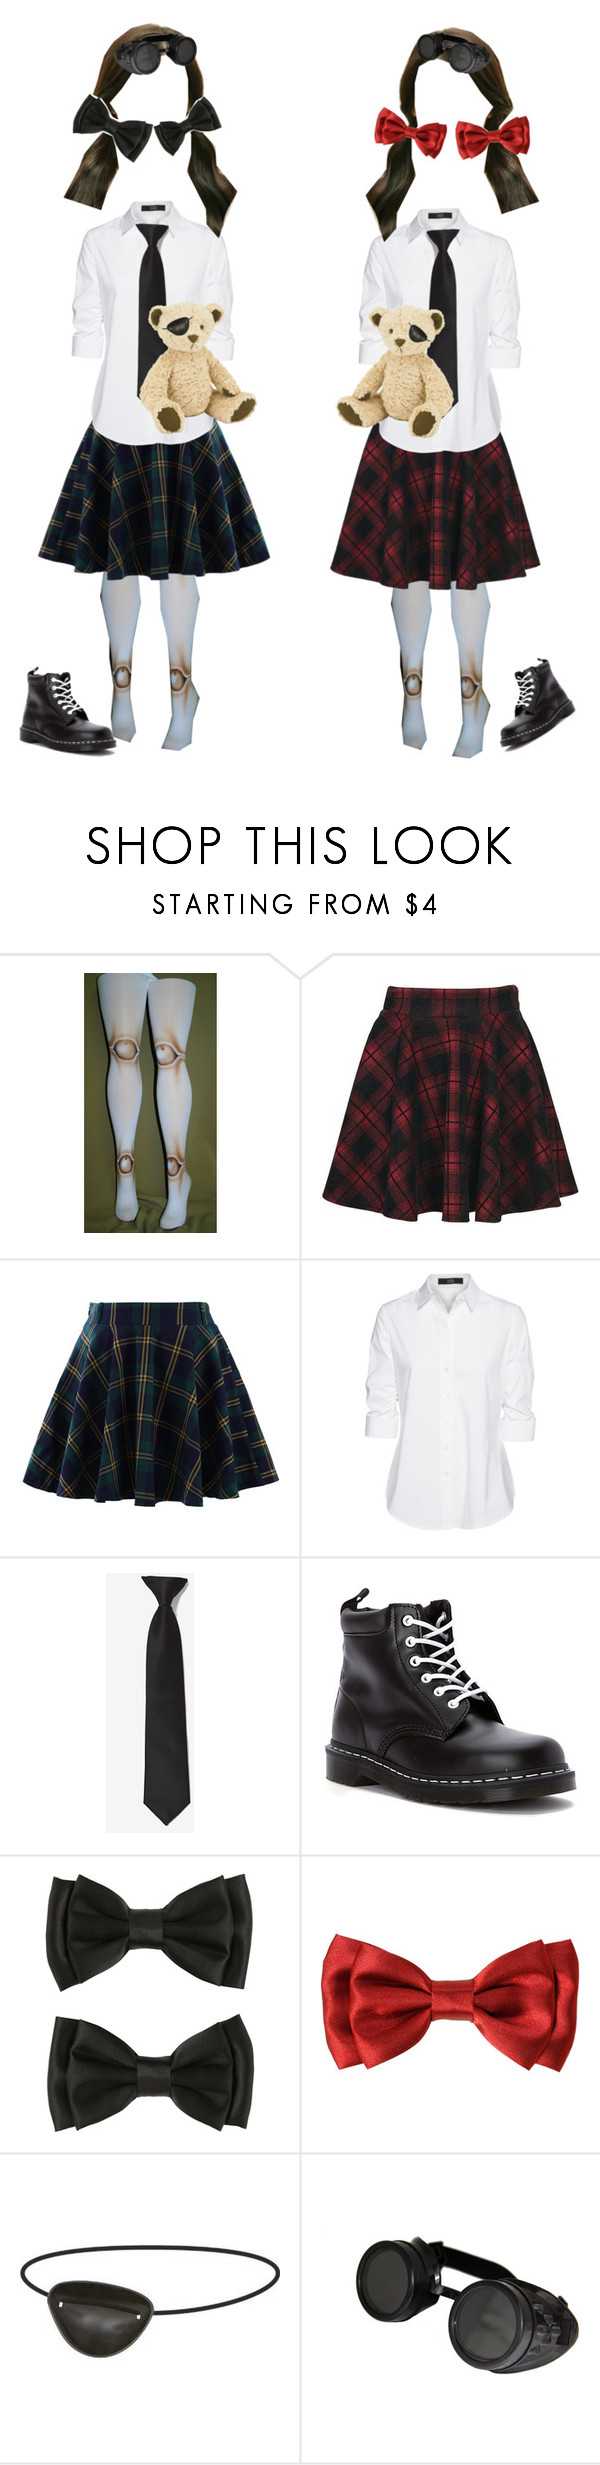 """Twins"" by victoriamarie3172001 ❤ liked on Polyvore featuring Boohoo, Chicwish, Steffen Schraut, Dr. Martens and Jellycat"